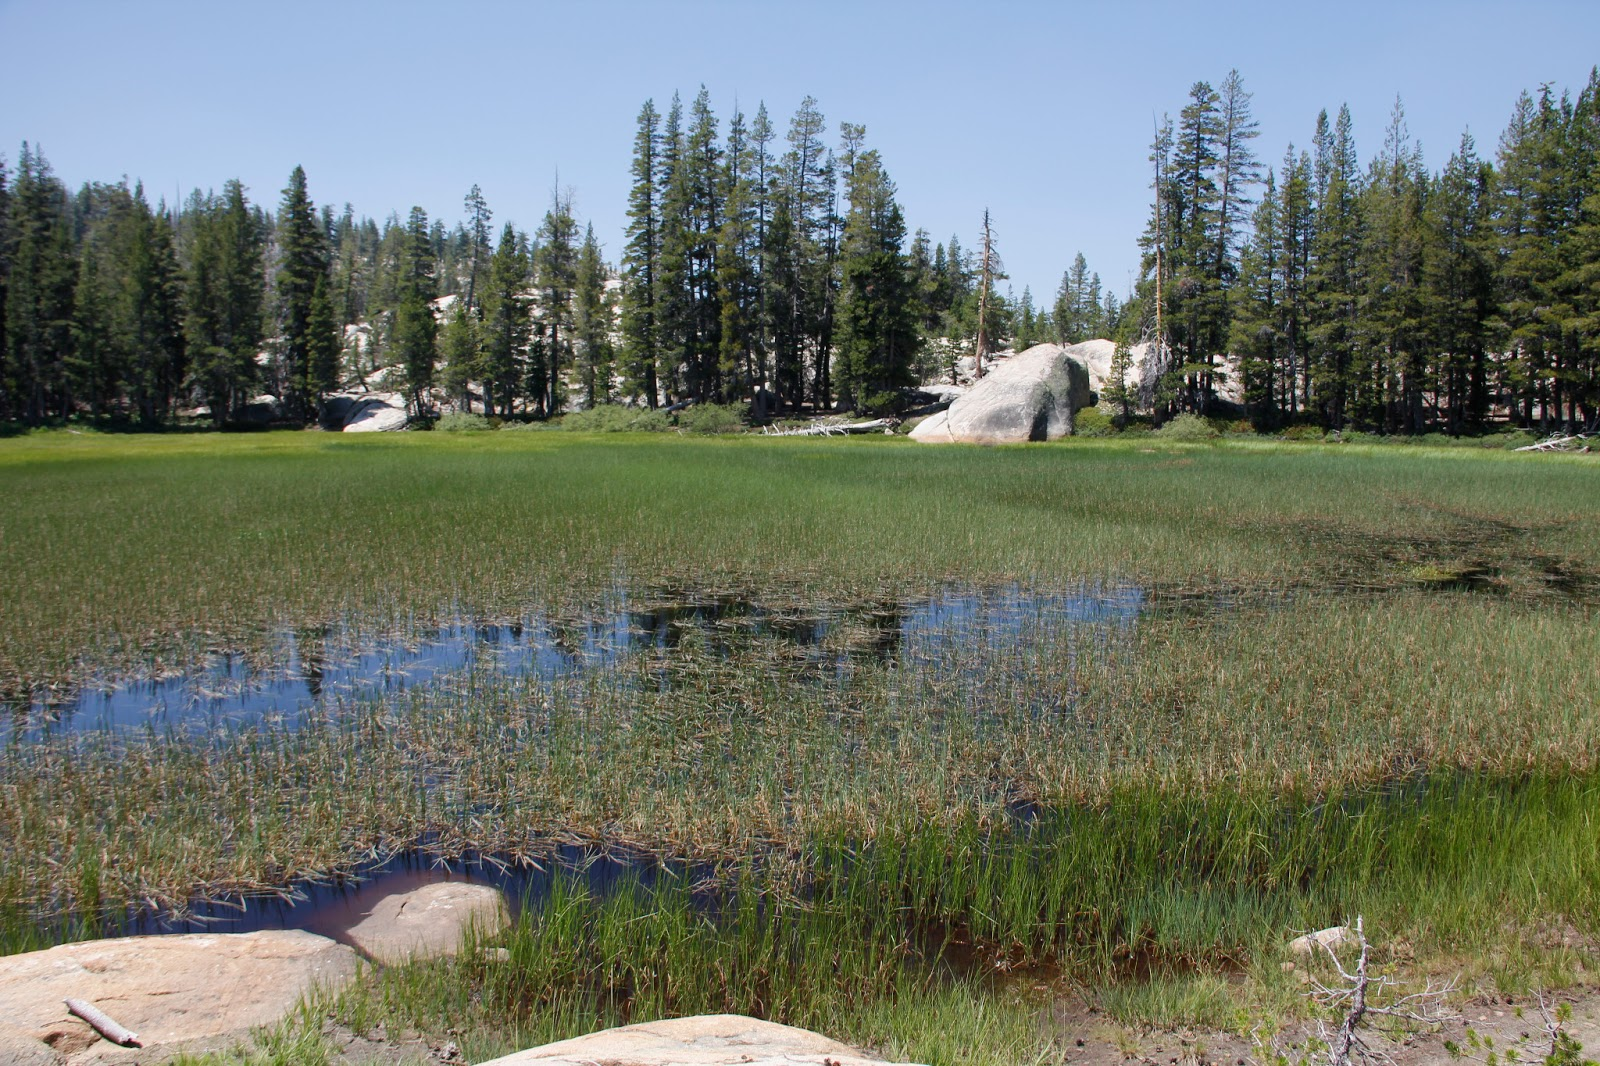 Sierra Nevada Ca: Sierra Nevada Hikes And Lakes: Chain Lakes, Emmigrant